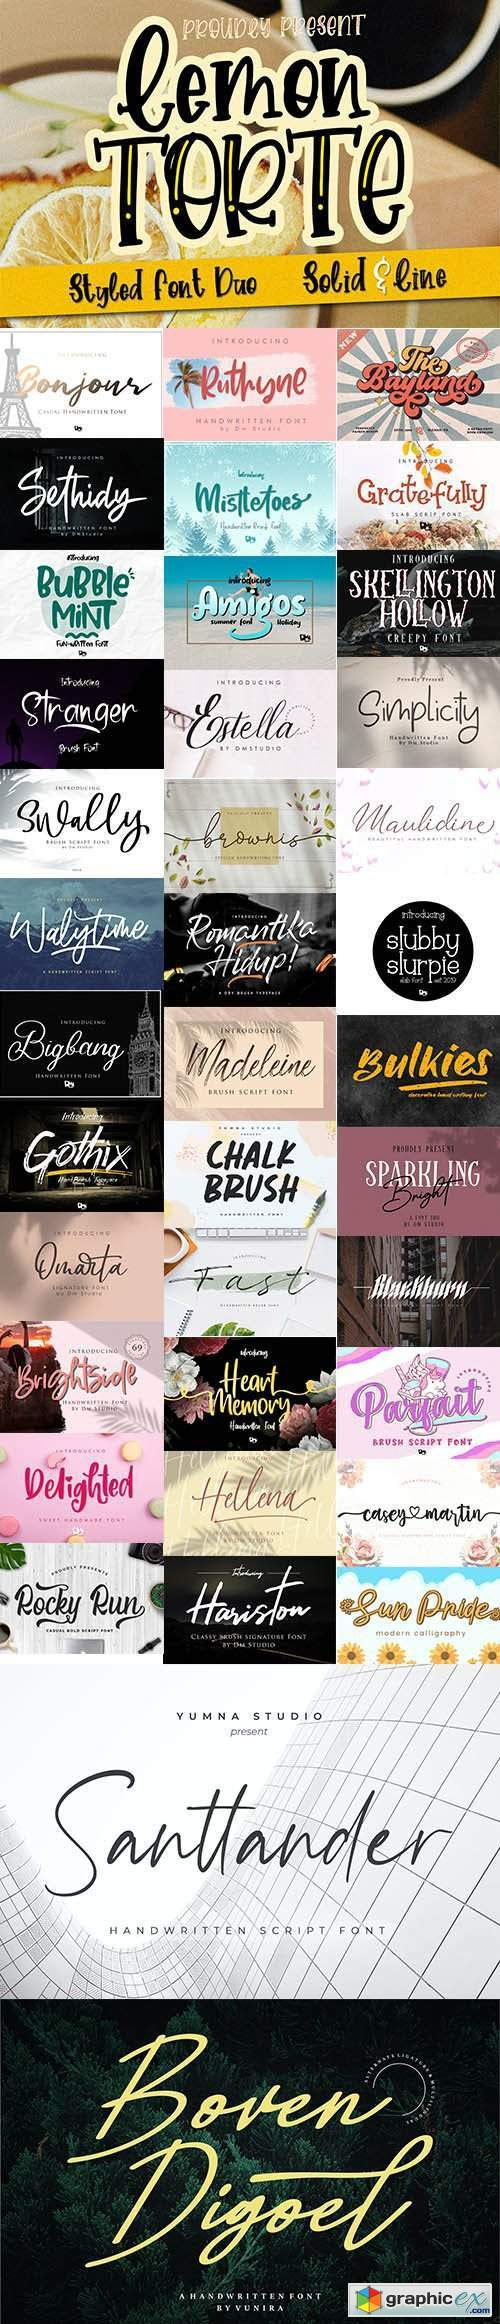 Abrir Svg En Silhouette Studio Free Svg Cut Files Create Your Diy Projects Using Your Cricut Explore Silhouette And More The Free Cut Files Include Svg Dxf Eps And Png Files